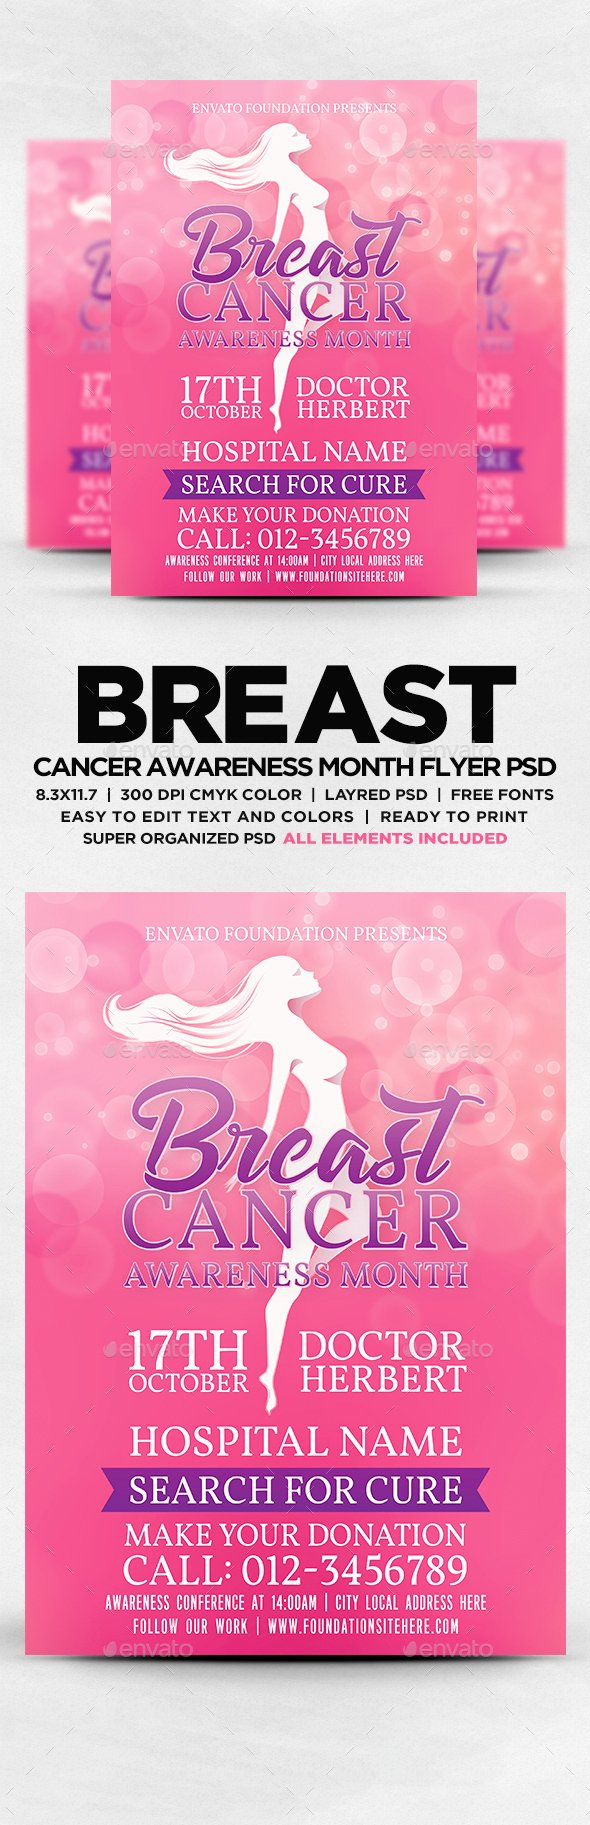 Breast Cancer Flyer Template Luxury Printable Breast Cancer Ribbon Template Tinkytyler